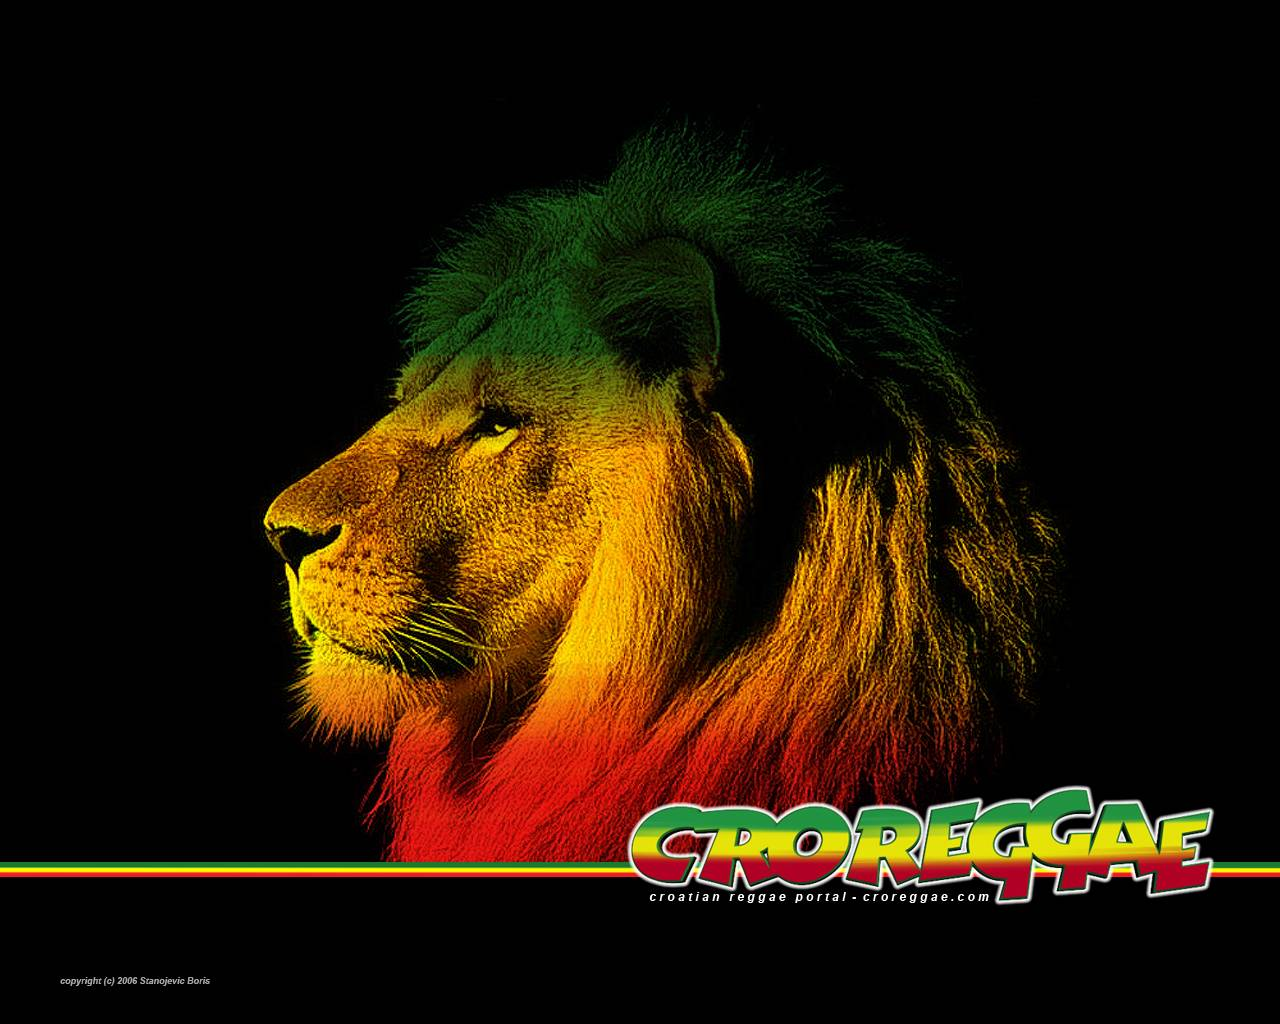 My Top Collection Rasta lion wallpaper 3Rasta Smoke Lion Wallpaper